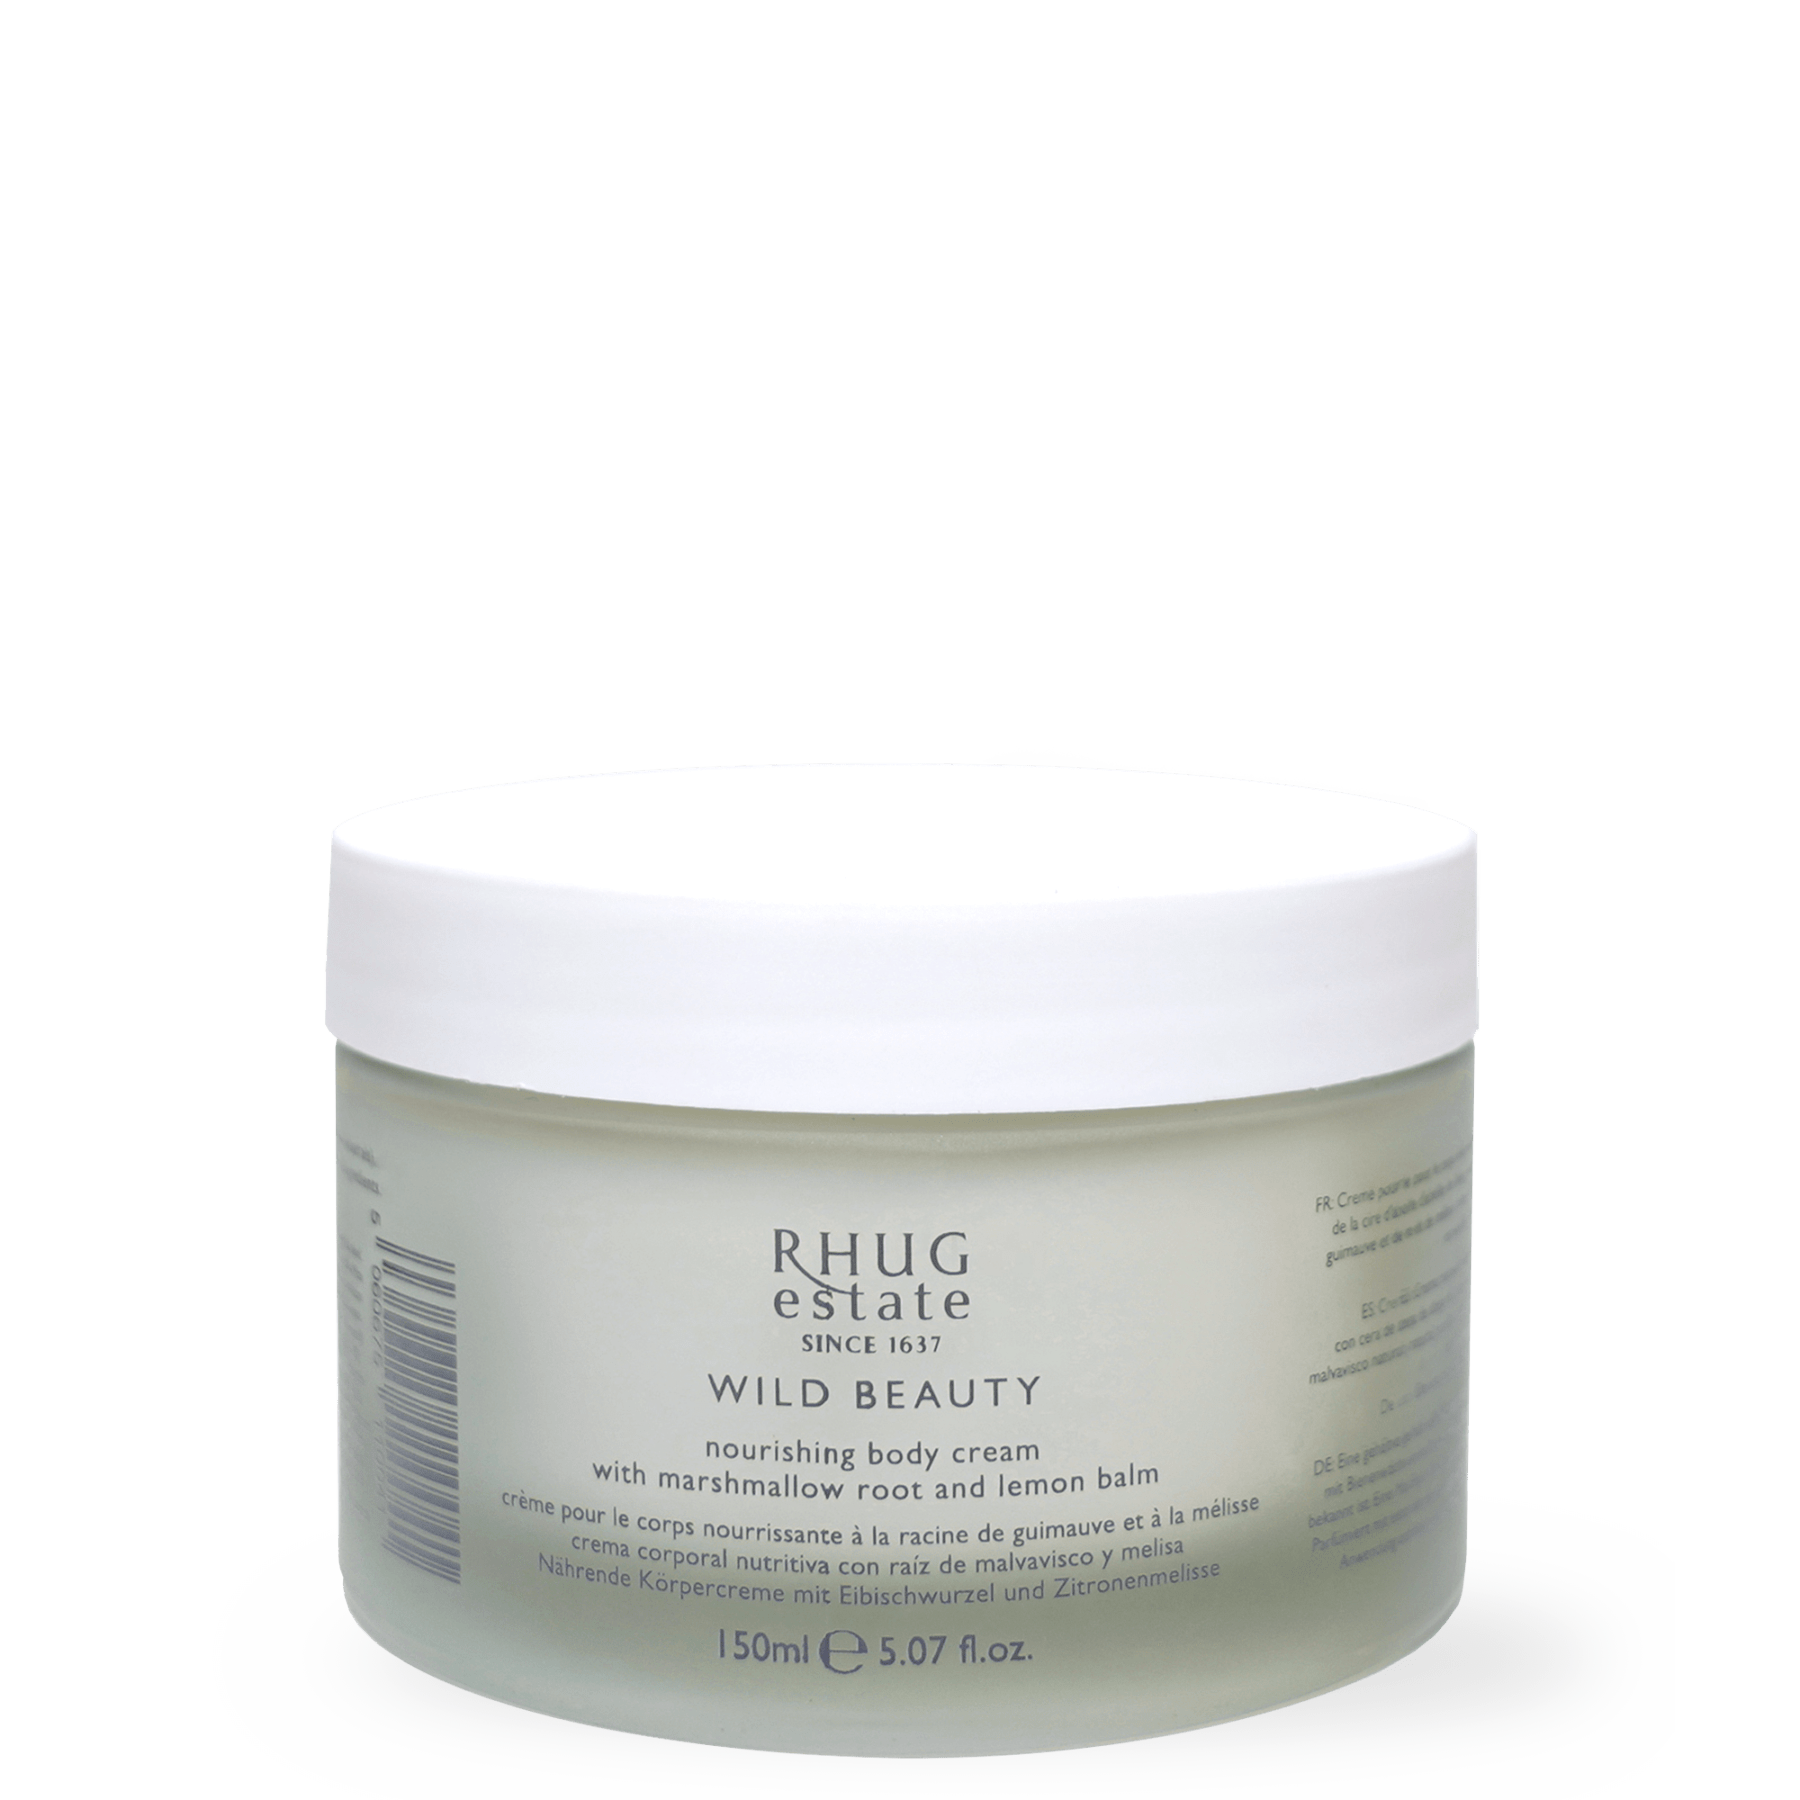 Nourishing Body Cream with Marshmallow Root and Lemon Balm by Rhug Wild Beauty